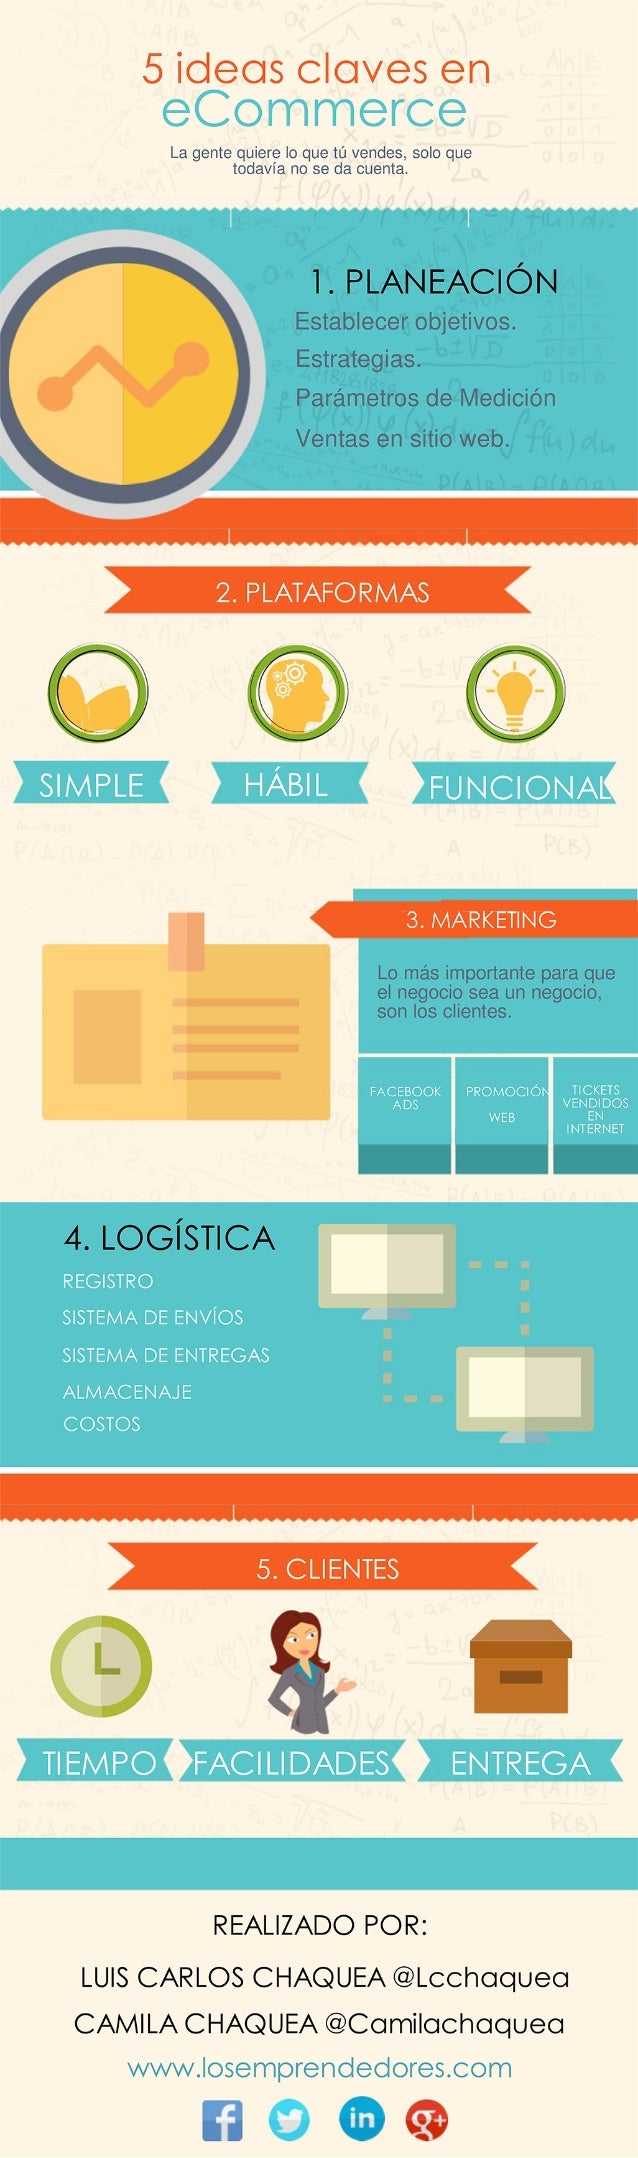 5 ideas claves en ecommerce